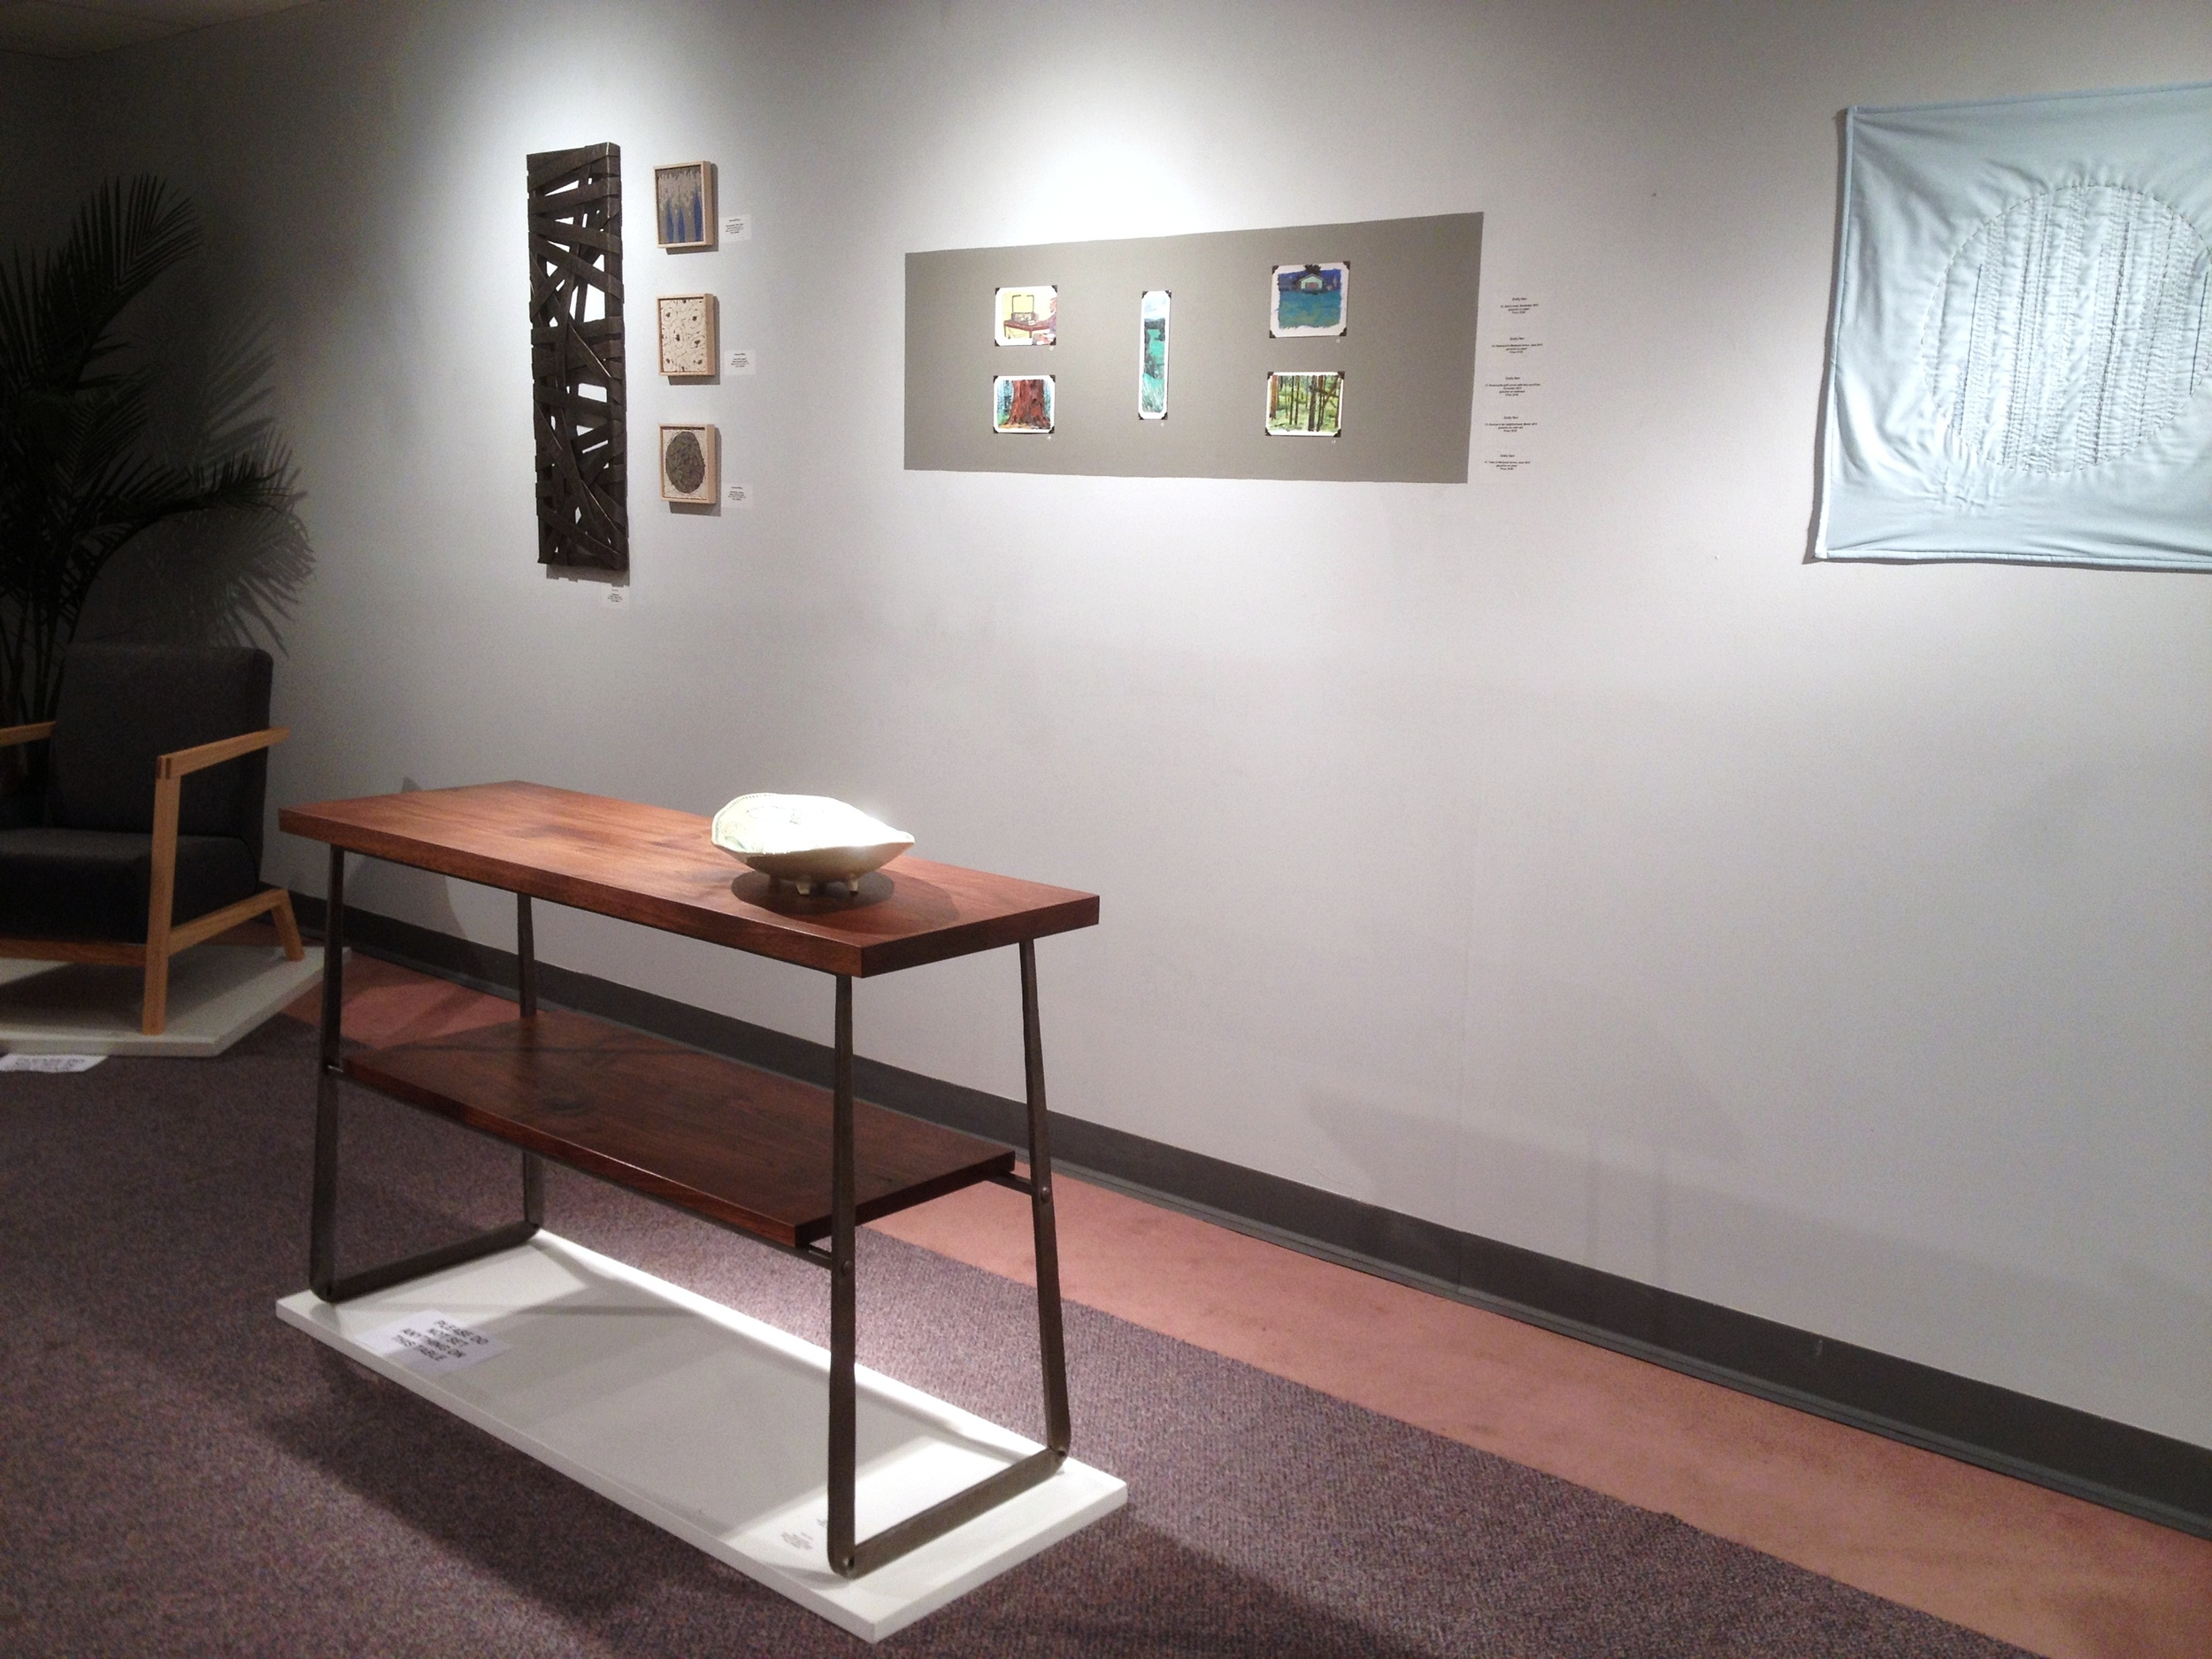 Walnut and forged steel table at group show